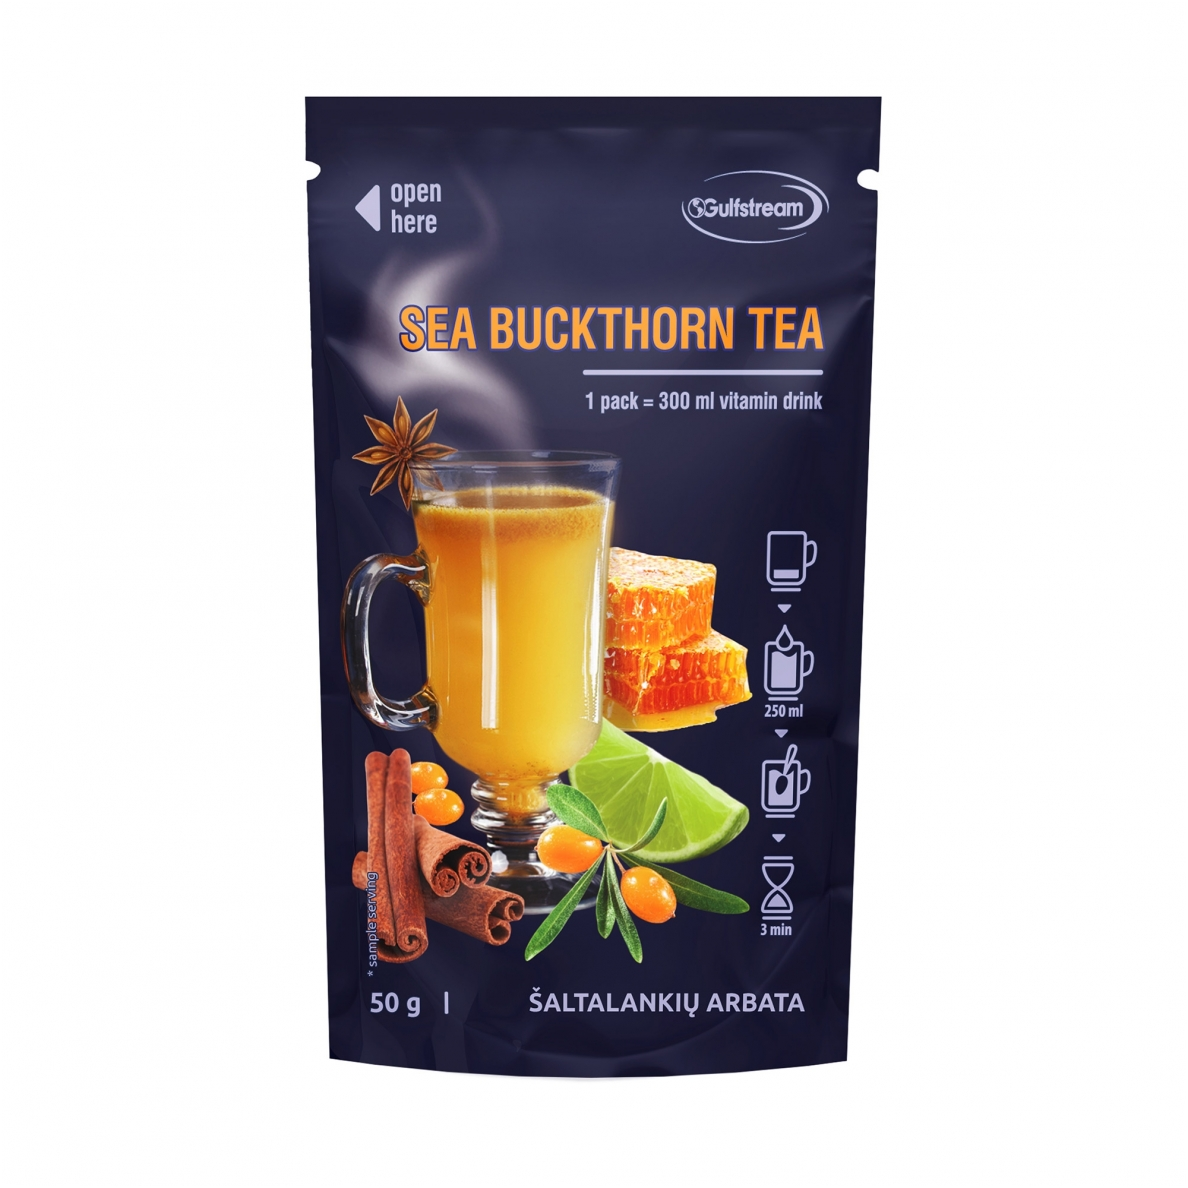 Gulfstream Sea Buckthorn Tea